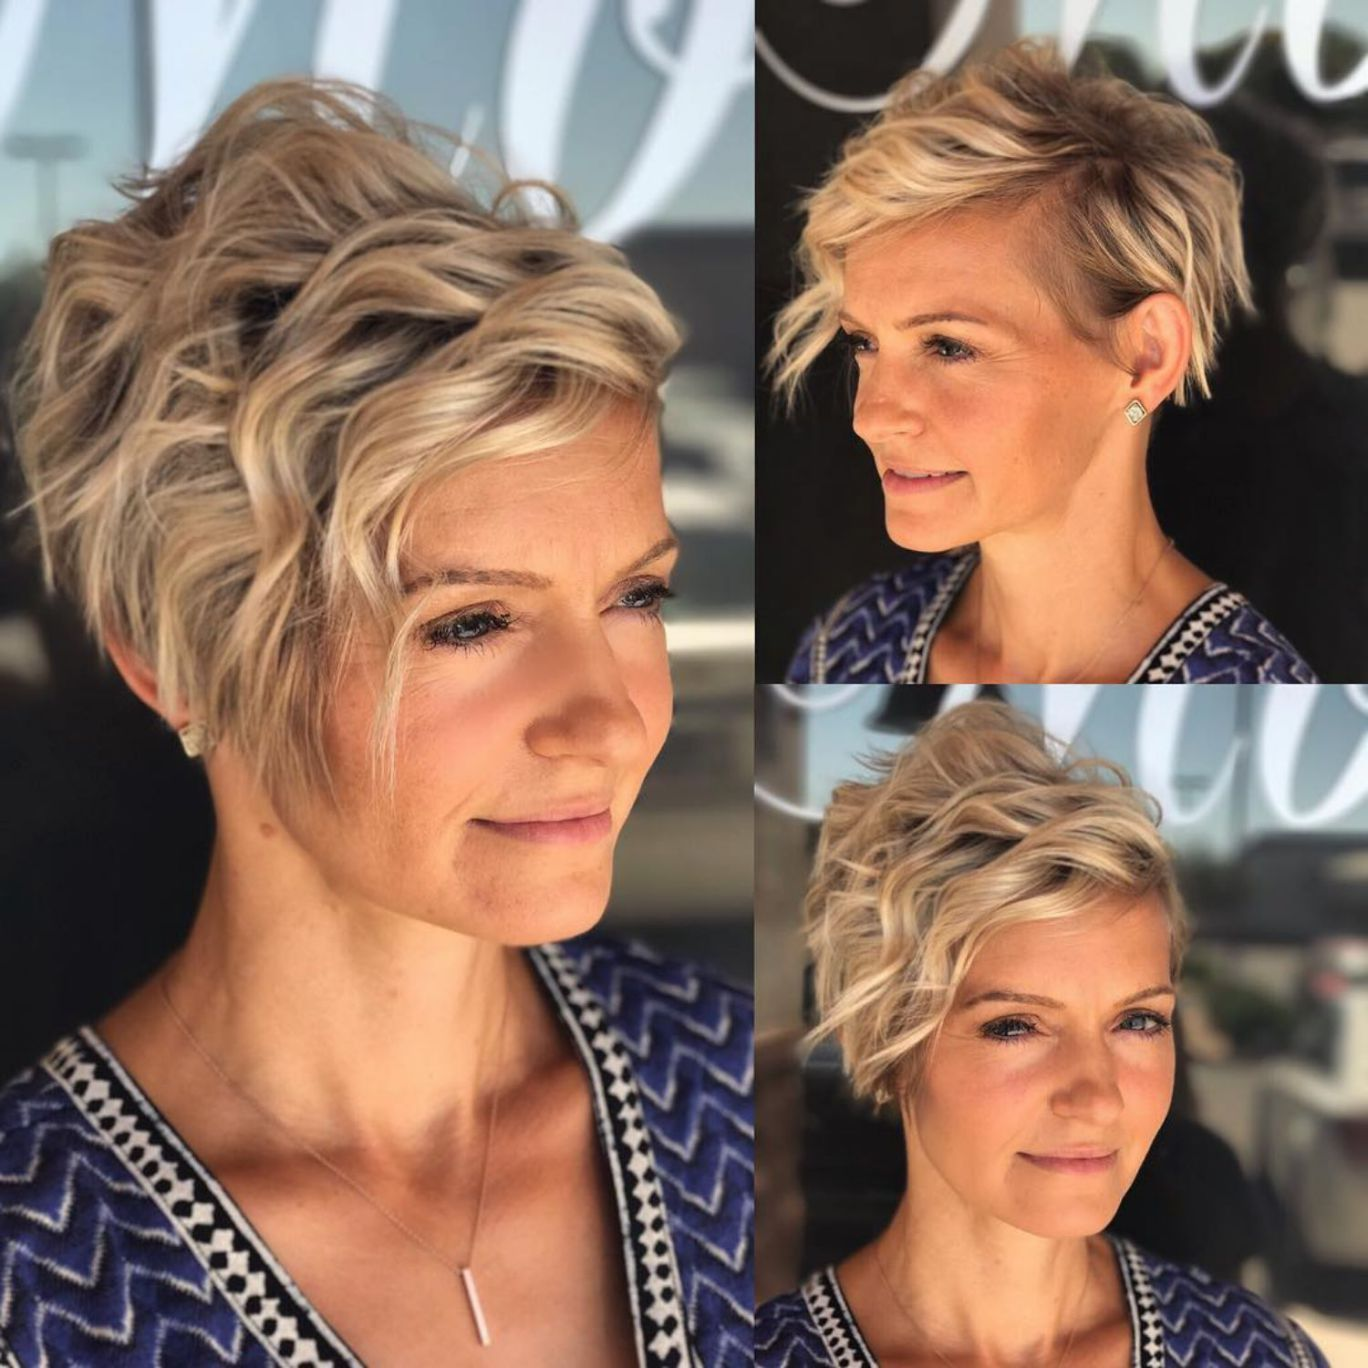 Pixie Haircuts With Bangs   Terrific Tapers  over   Pinterest